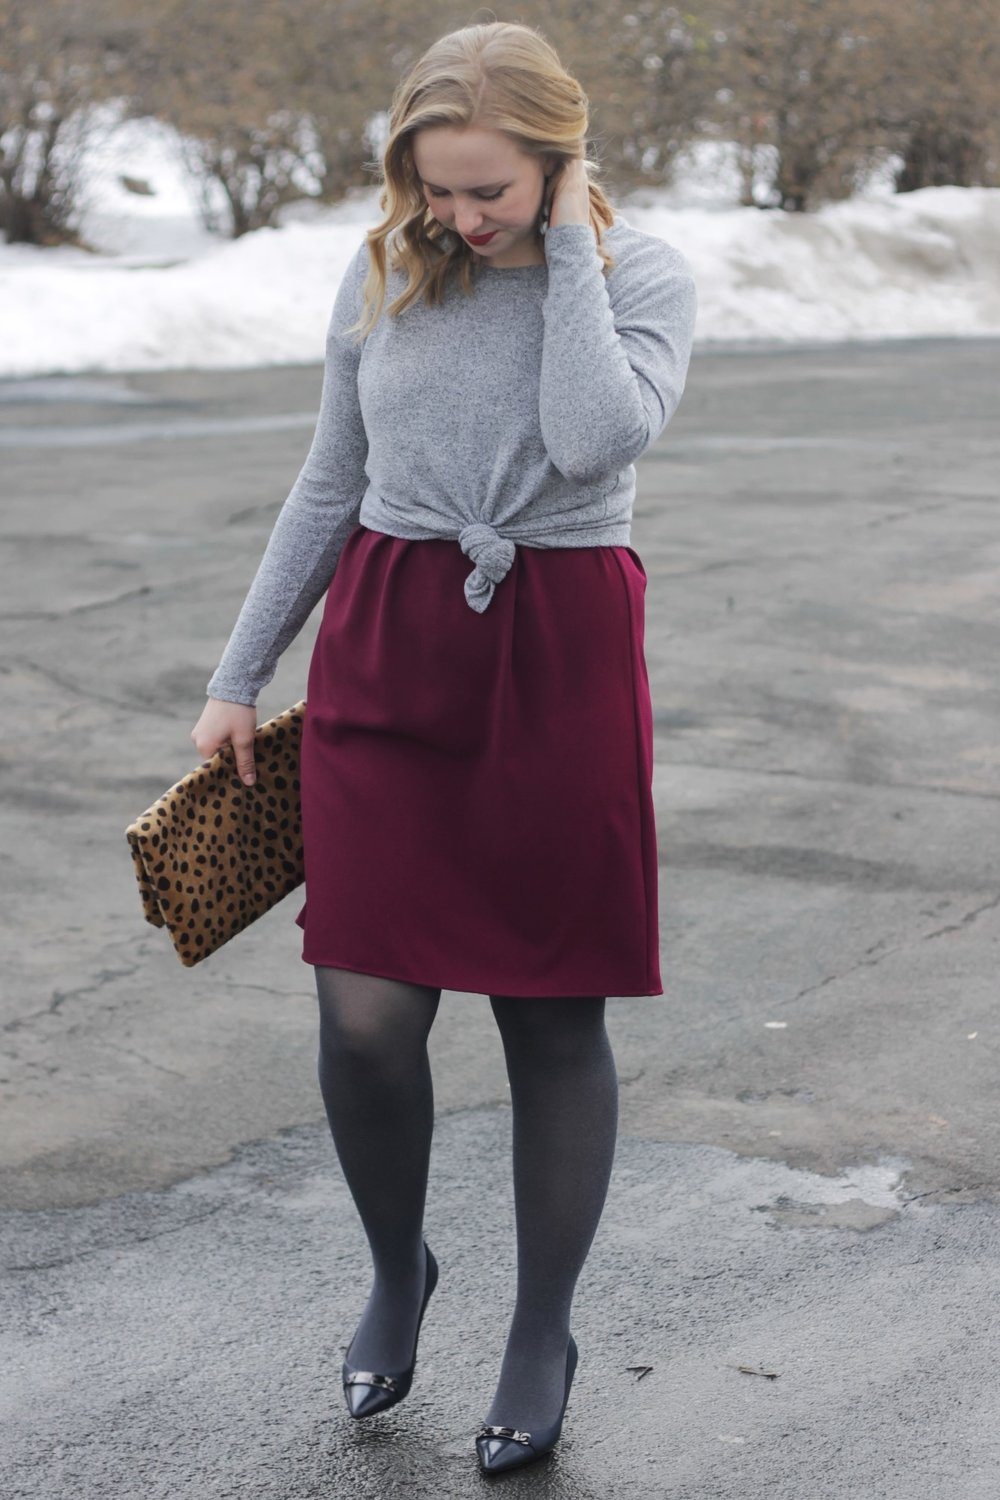 Romantic Looks   Valentine's Day on a Budget   Work & What She Wore